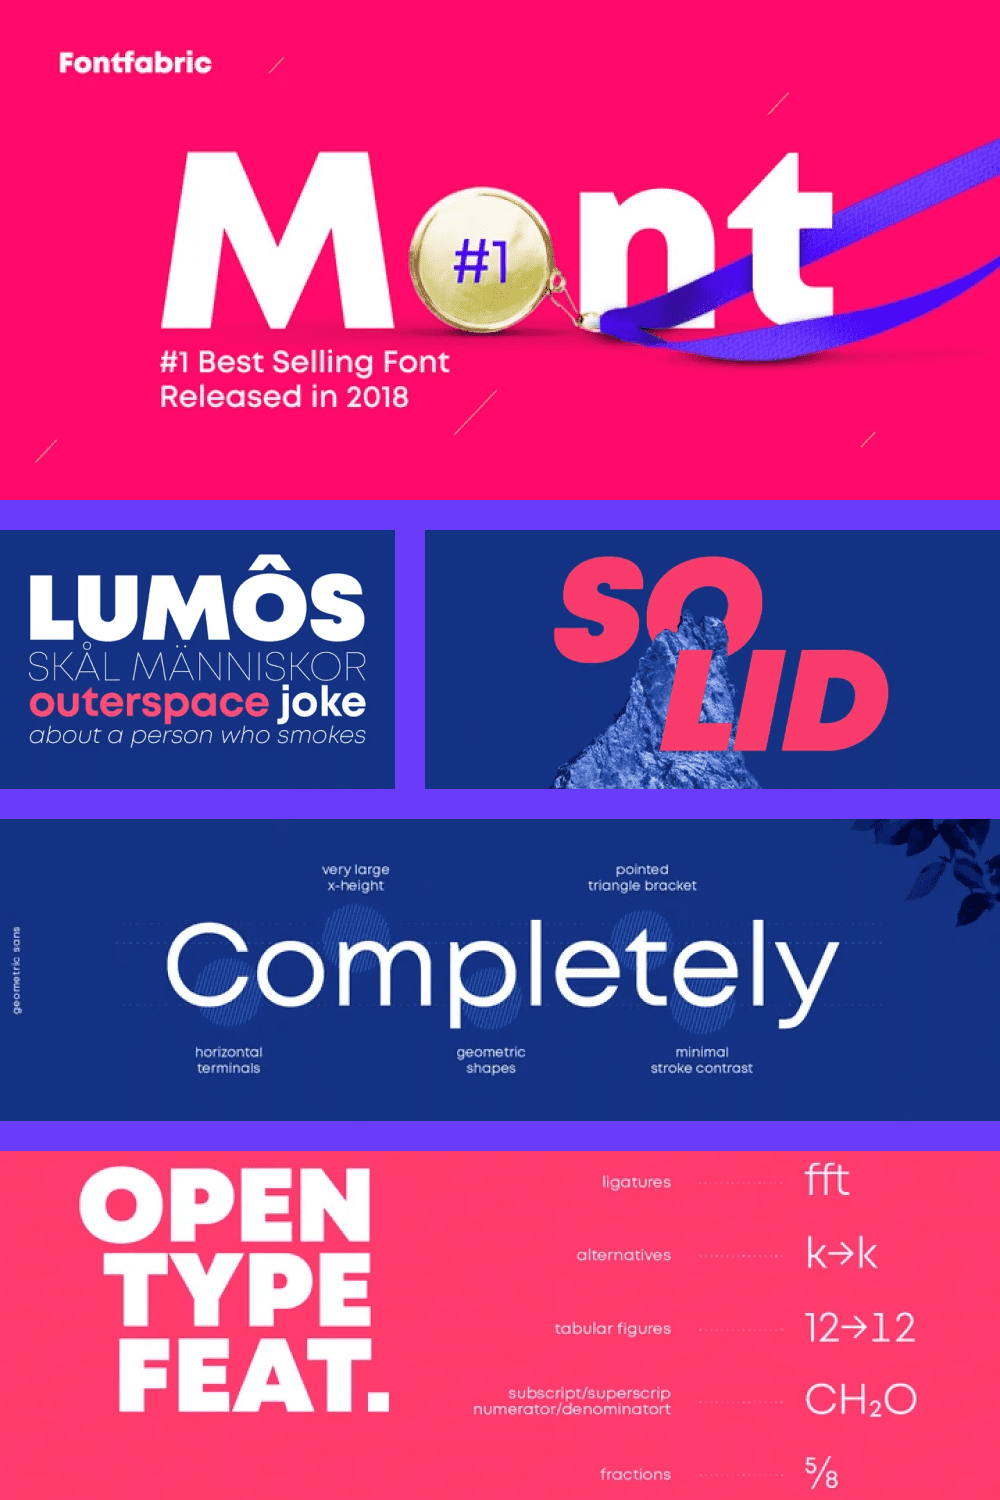 Mont is a geometric sans serif consisting of 10 weights ranging from Hairline to Black with matching italics.